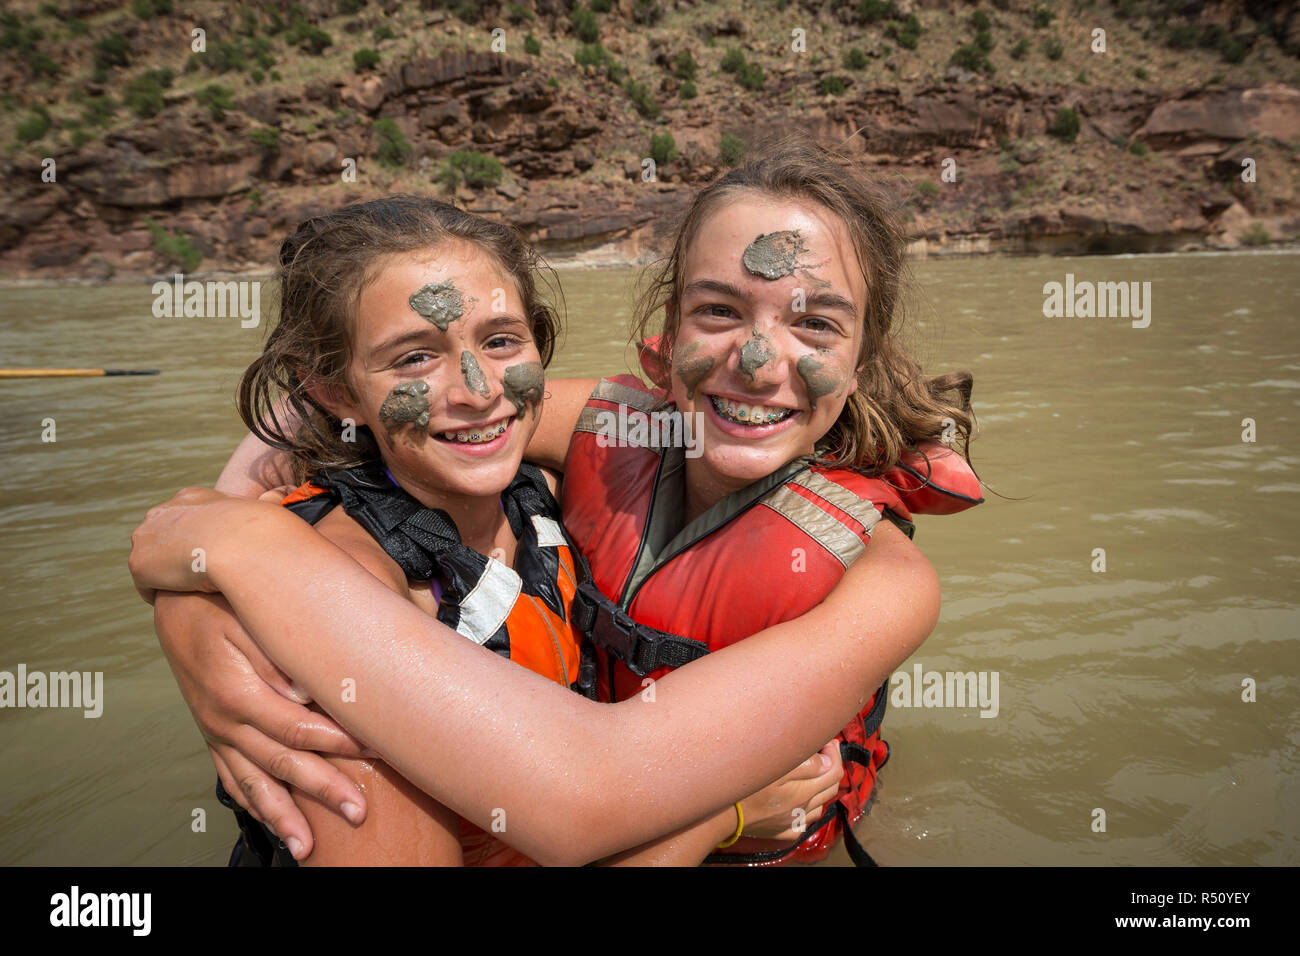 Two children playing in the river and painting mud on each others faces while on a Green river rafting trip, Desolation/Gray Canyon section, Utah, USA - Stock Image